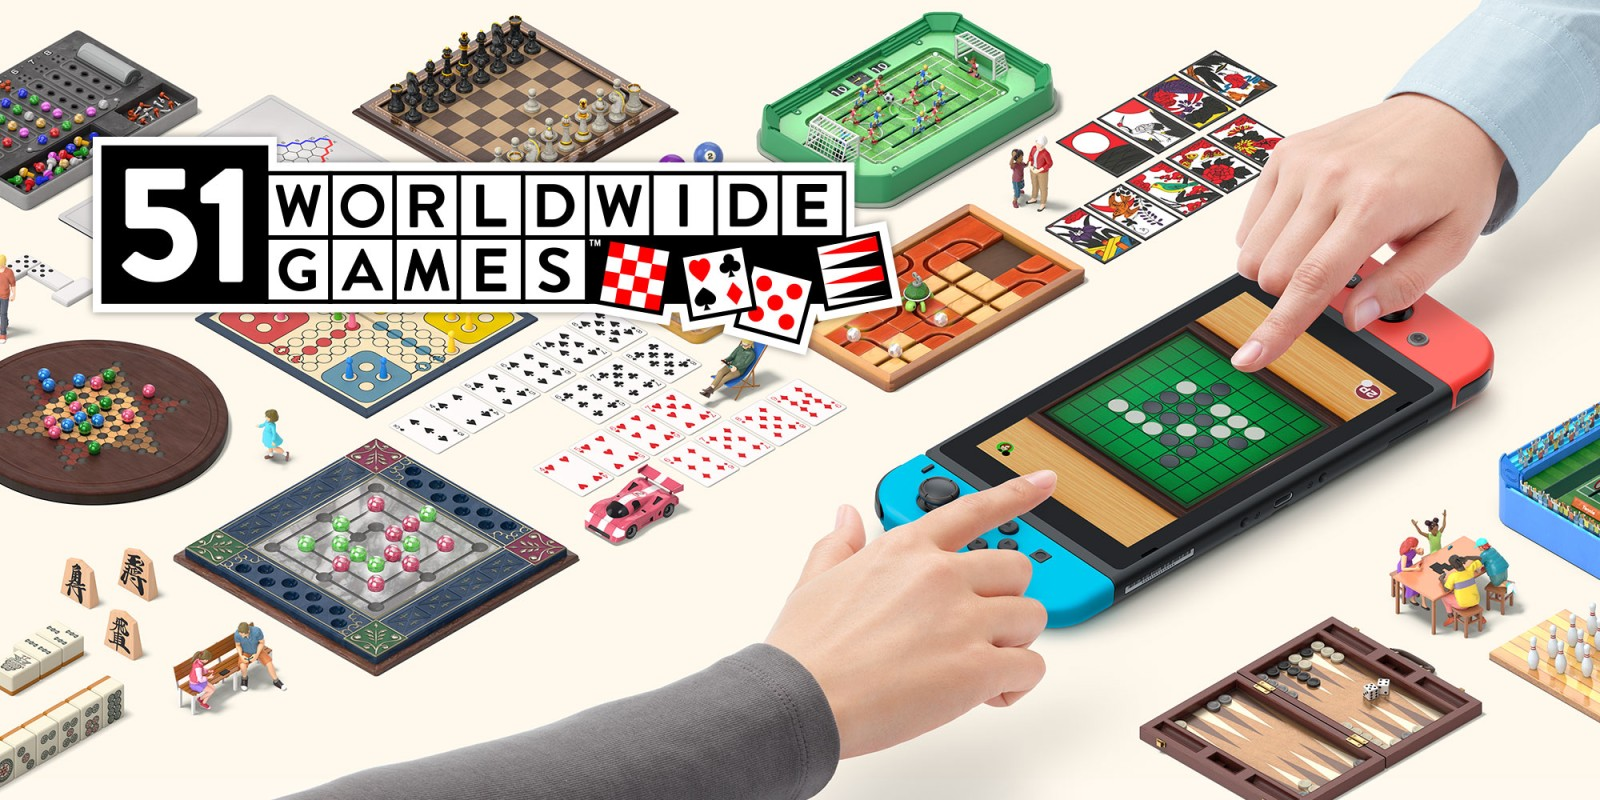 51 Worldwide Games, Nintendo, Nintendo Switch